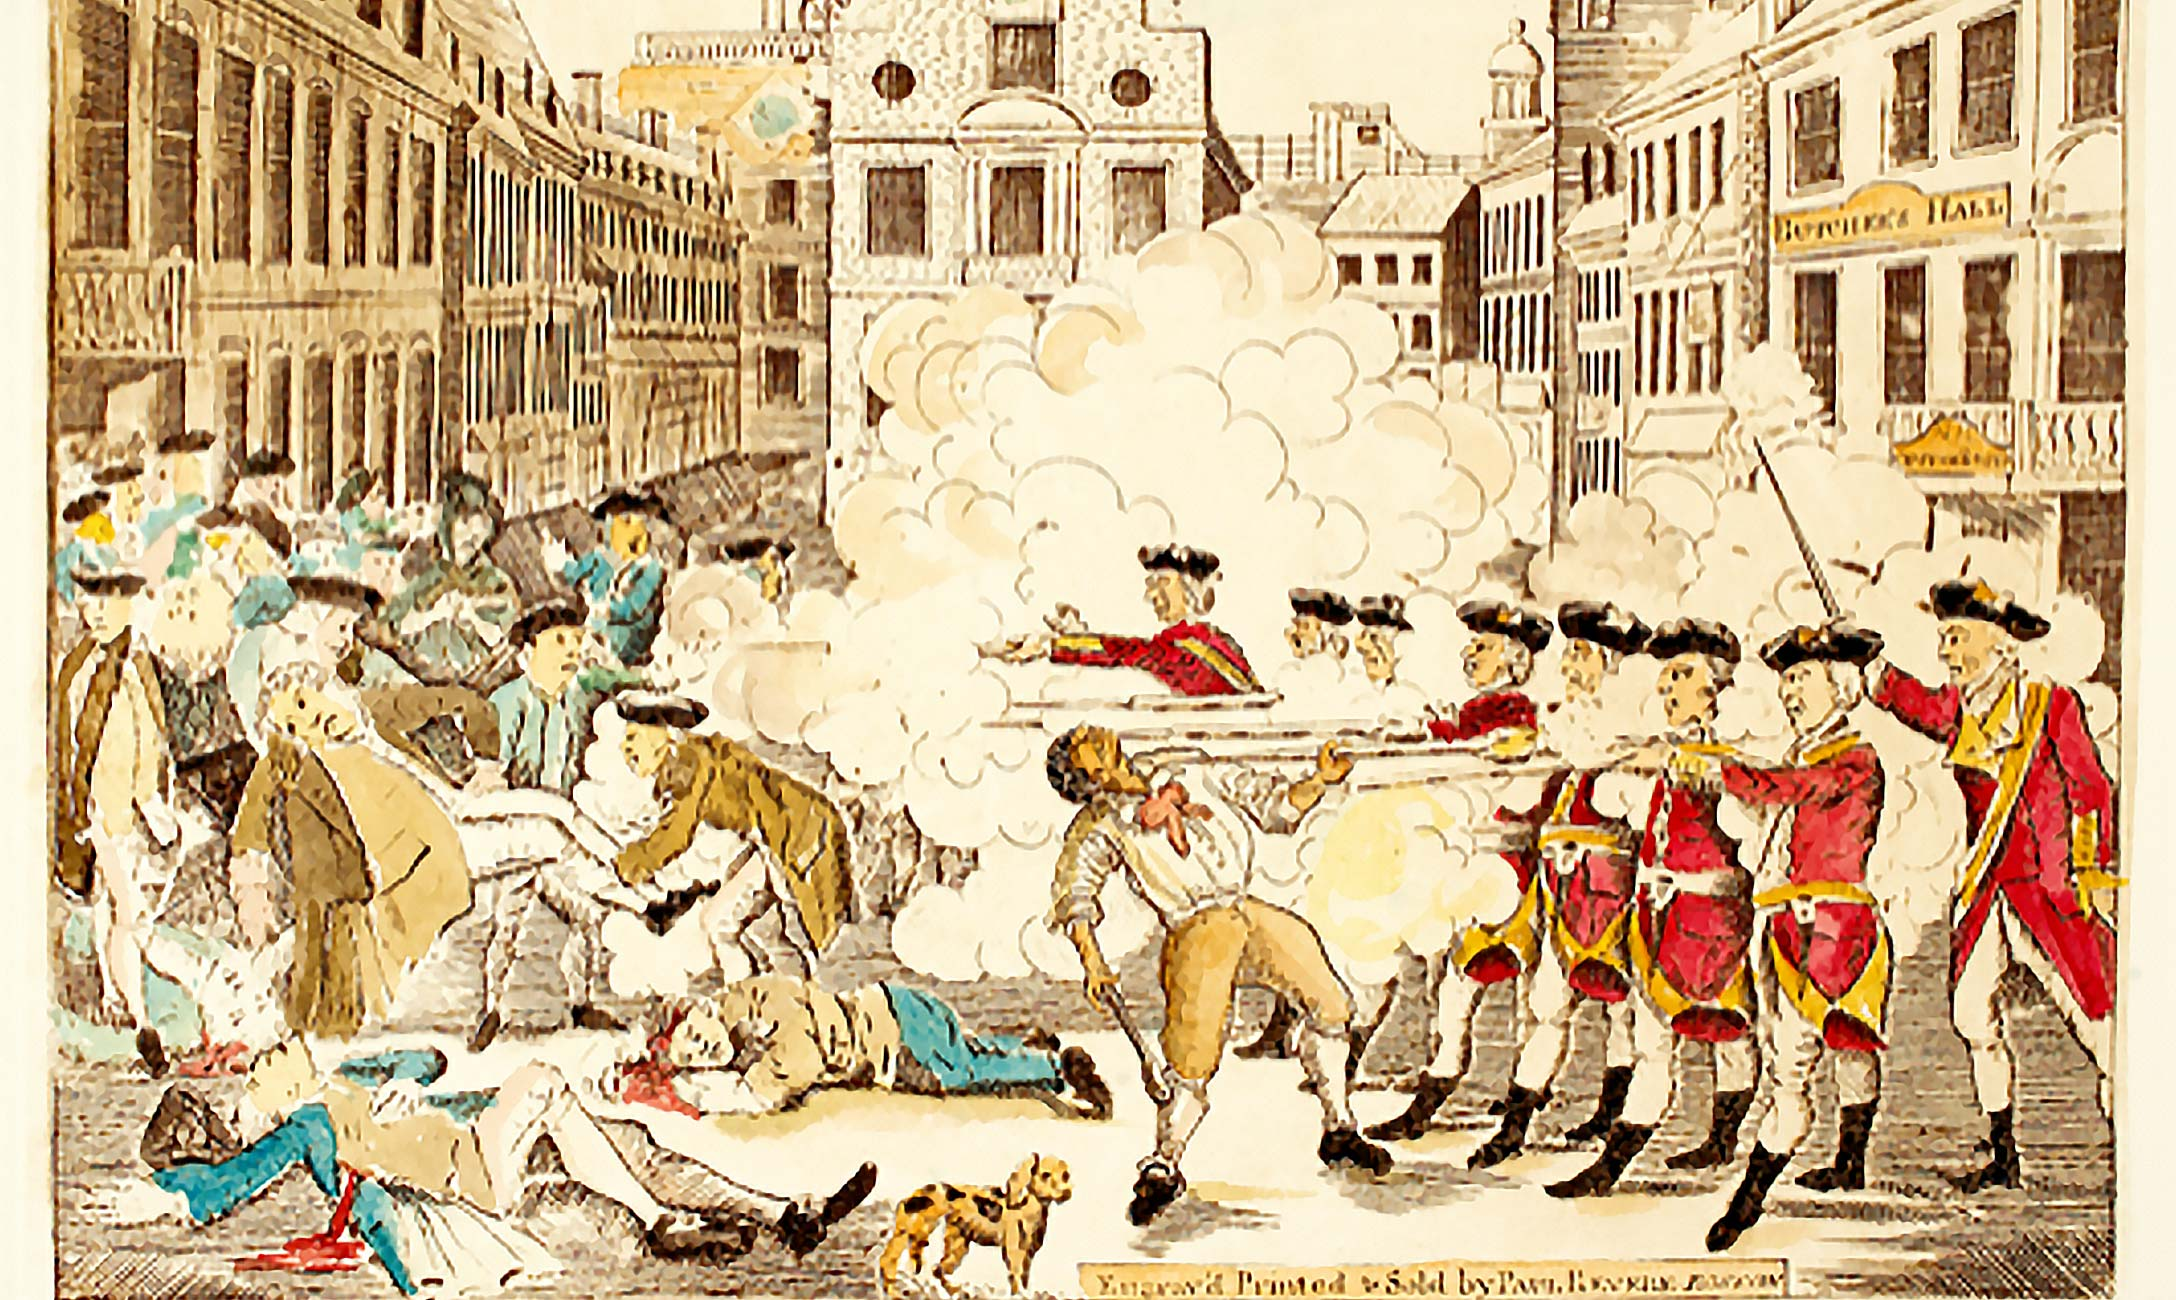 Color print of Tomolillo's revised Revere etching of the Boston Massacre.